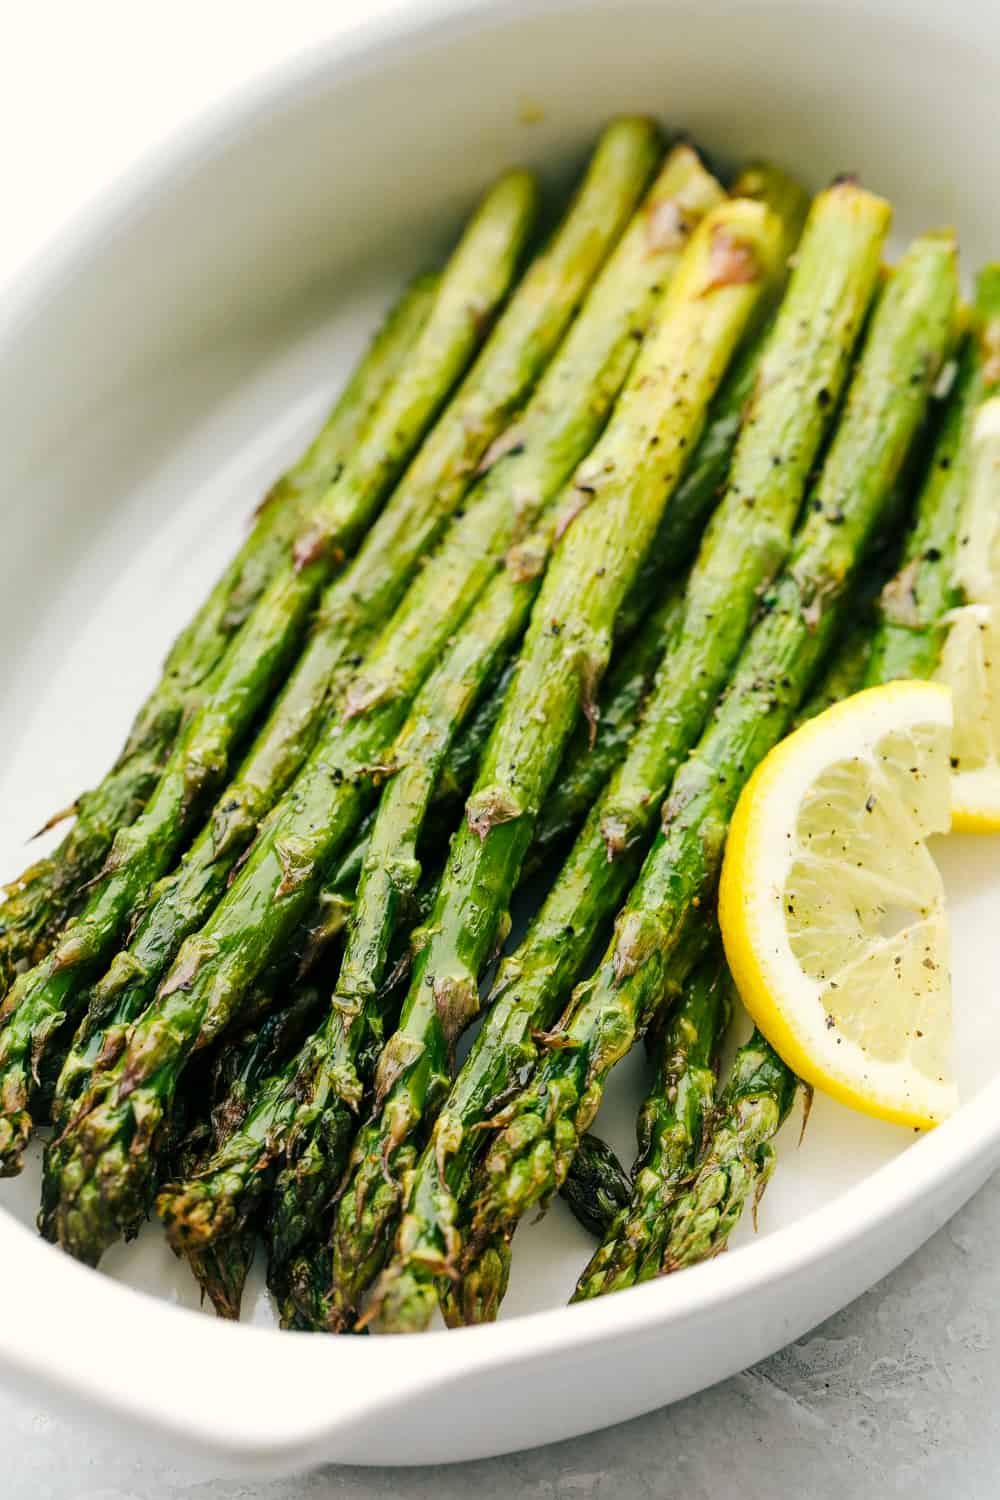 Air fryer roasted asparagus in a white dish.